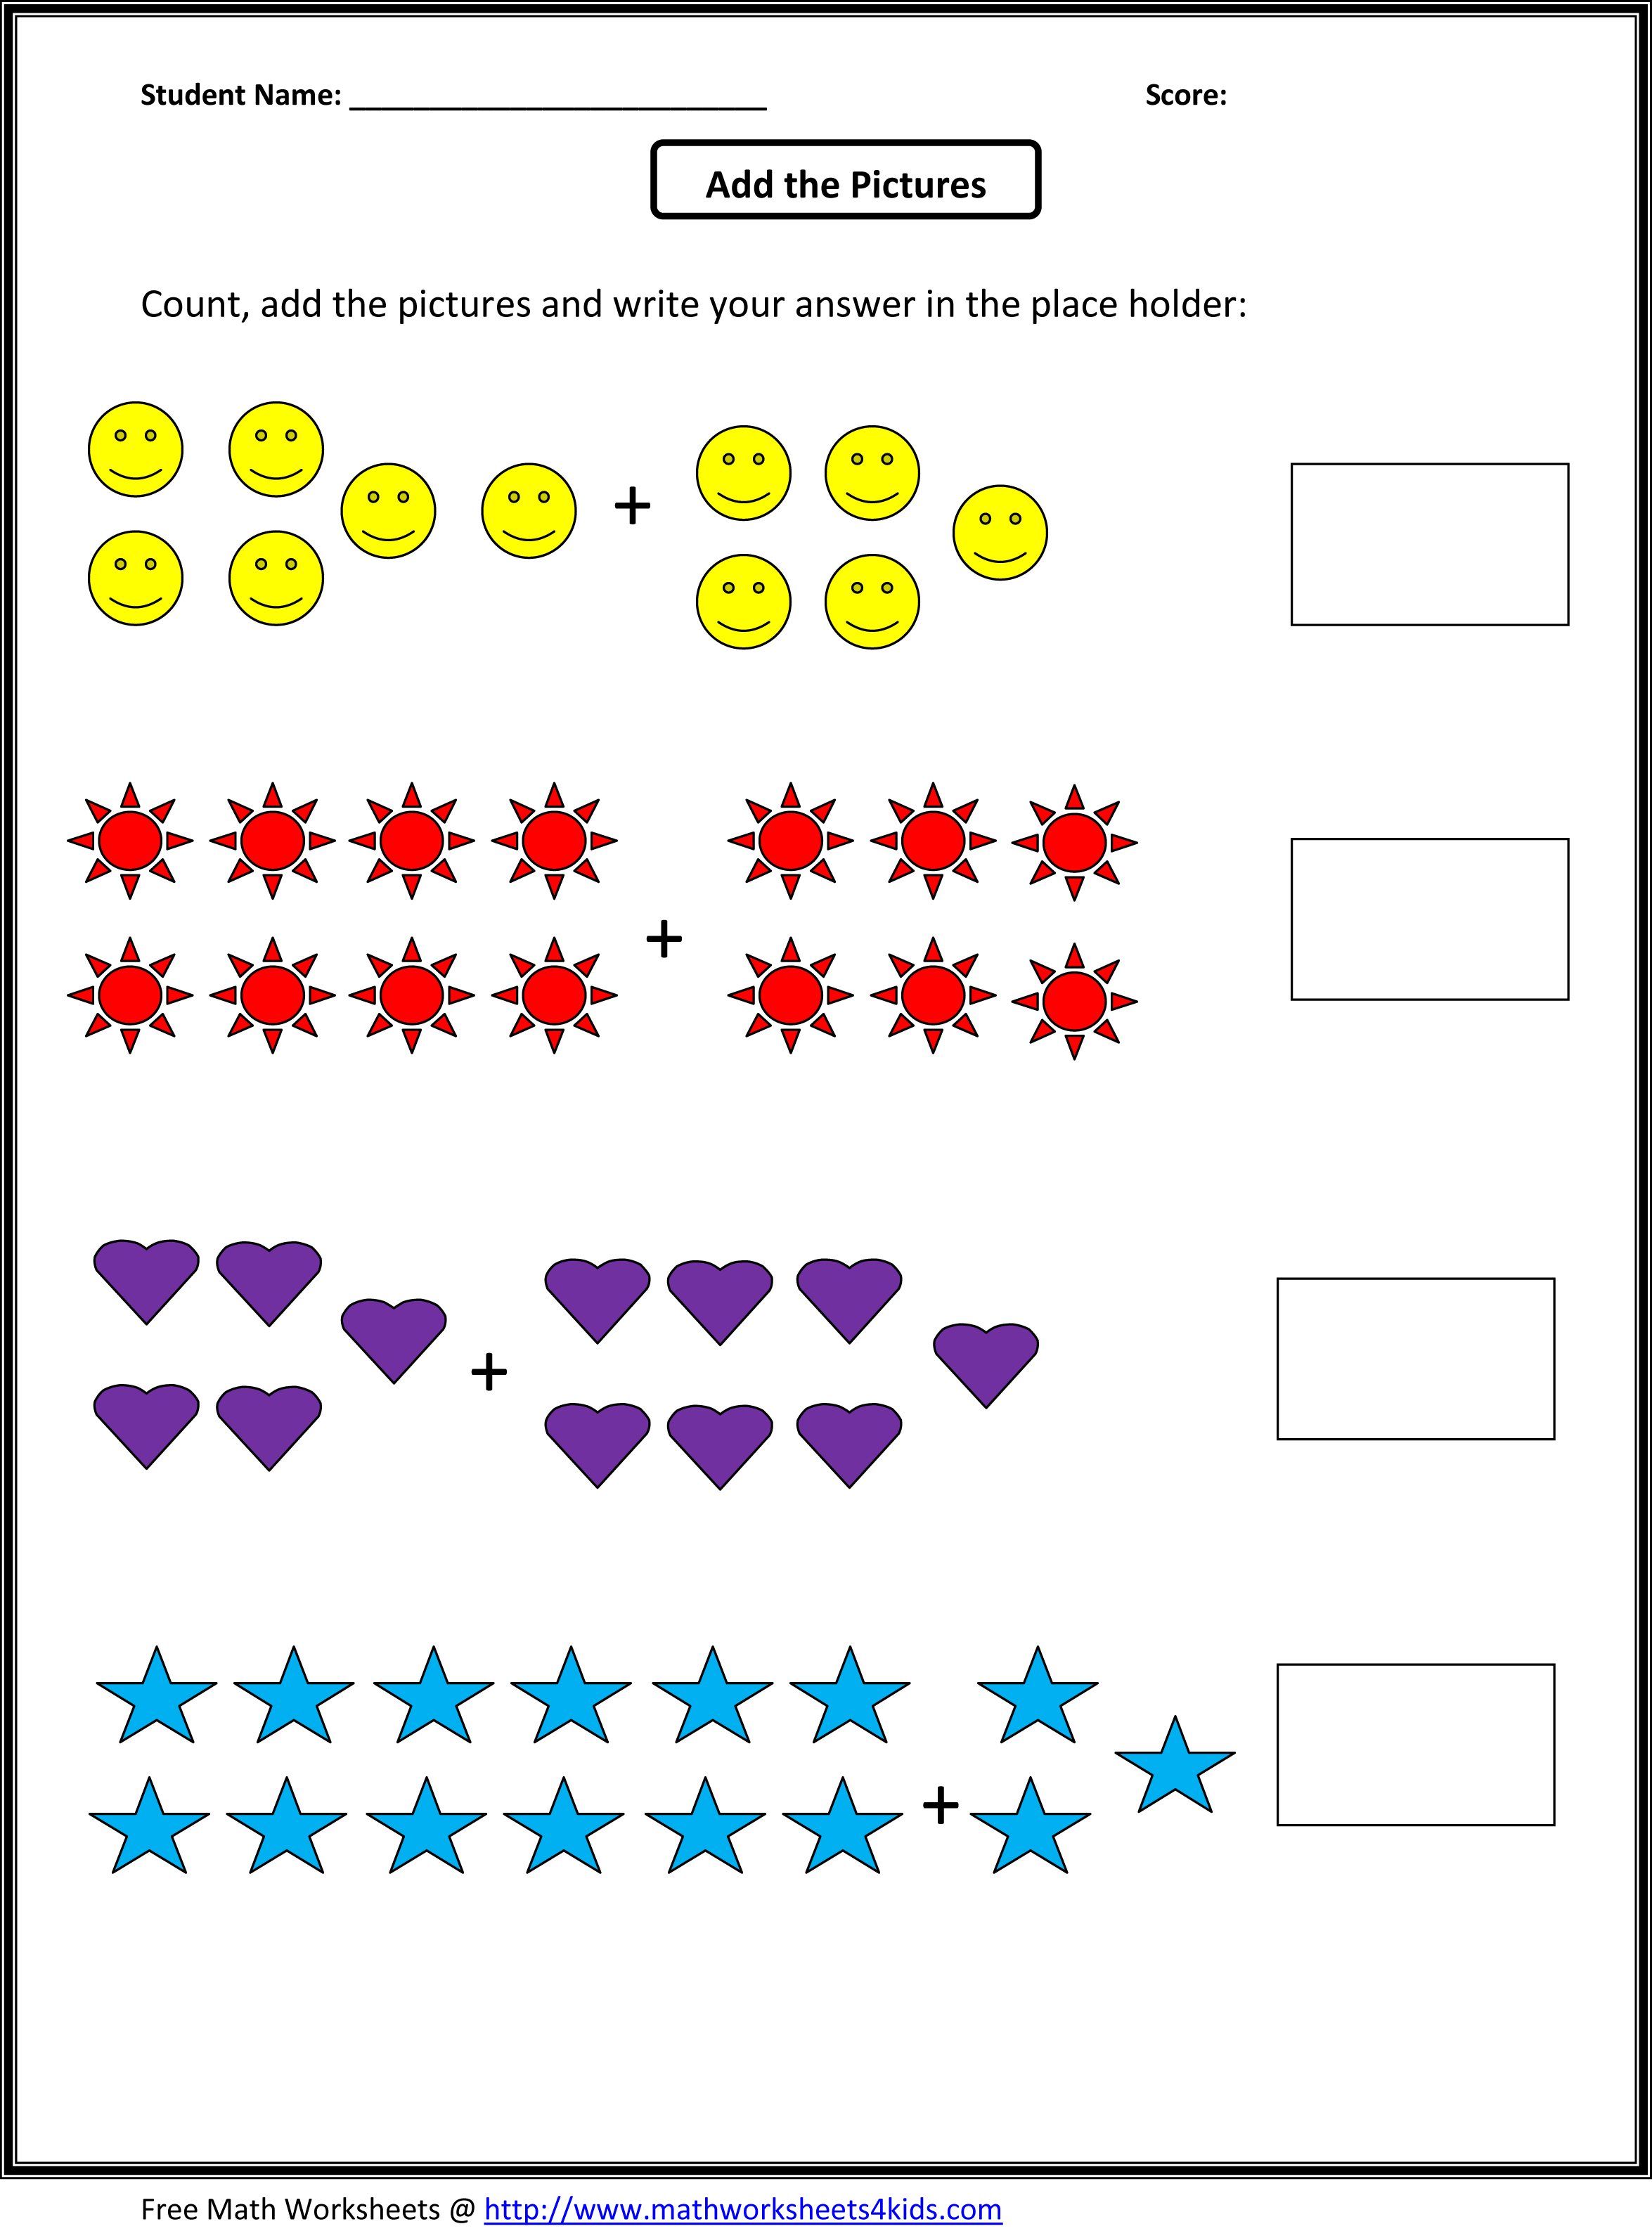 Proatmealus  Remarkable Grade  Maths Worksheet  Reocurent With Heavenly Math Worksheets For St Grade Free  Reocurent With Charming Cyber Bullying Worksheets Activities Also Function Machines Worksheets Ks In Addition Teeth Worksheet Ks And Phrase Worksheets As Well As Growth And Development Worksheets Additionally Home Schooling Worksheets From Reocurentcom With Proatmealus  Heavenly Grade  Maths Worksheet  Reocurent With Charming Math Worksheets For St Grade Free  Reocurent And Remarkable Cyber Bullying Worksheets Activities Also Function Machines Worksheets Ks In Addition Teeth Worksheet Ks From Reocurentcom